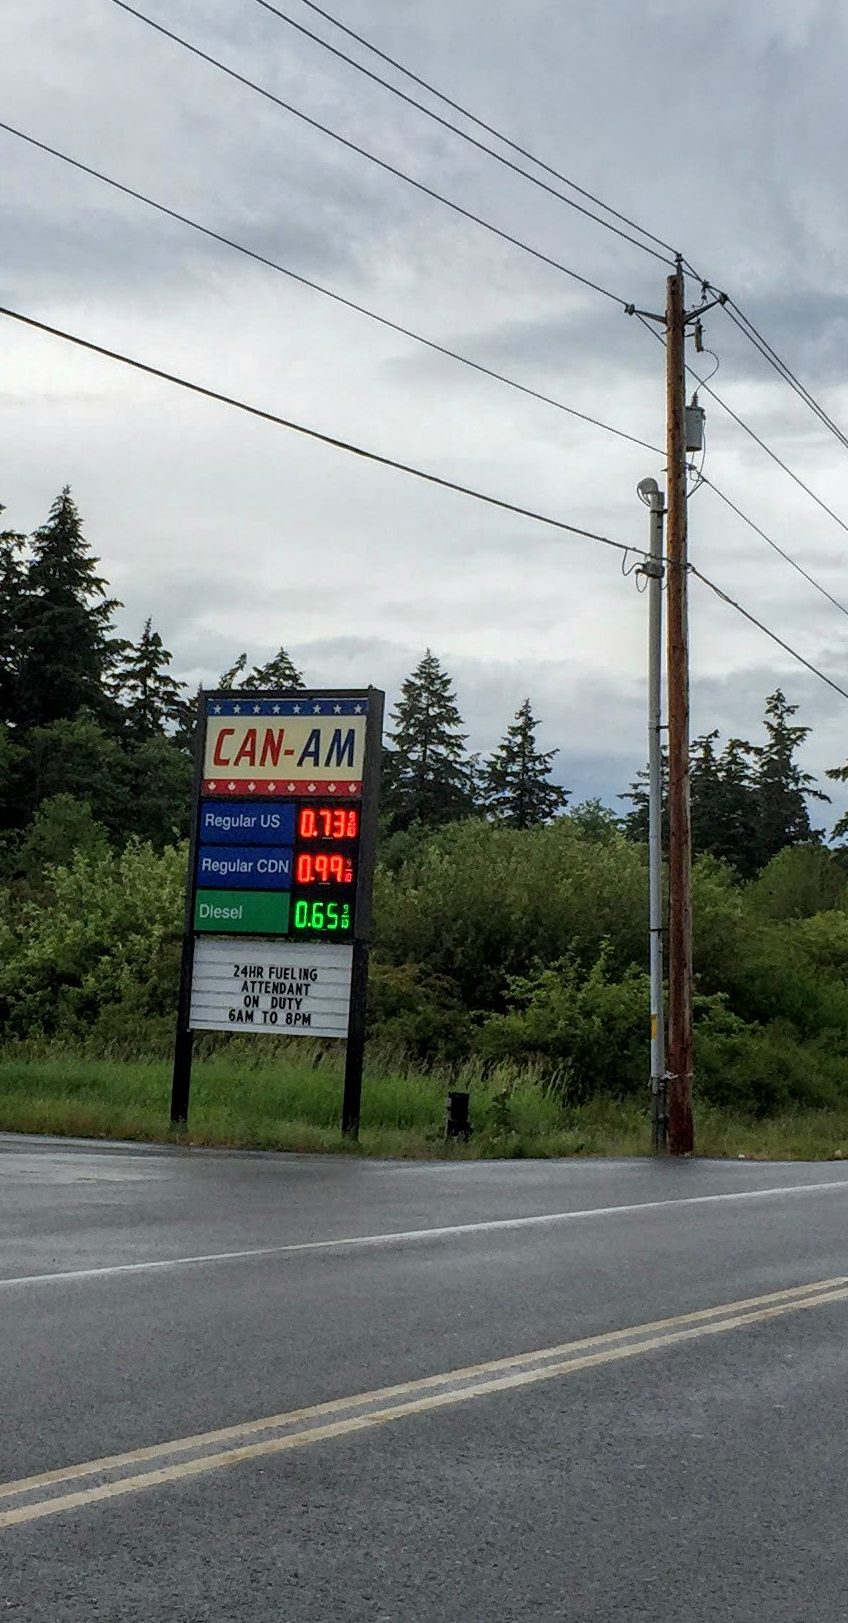 Gas prices in US and CAD dollars